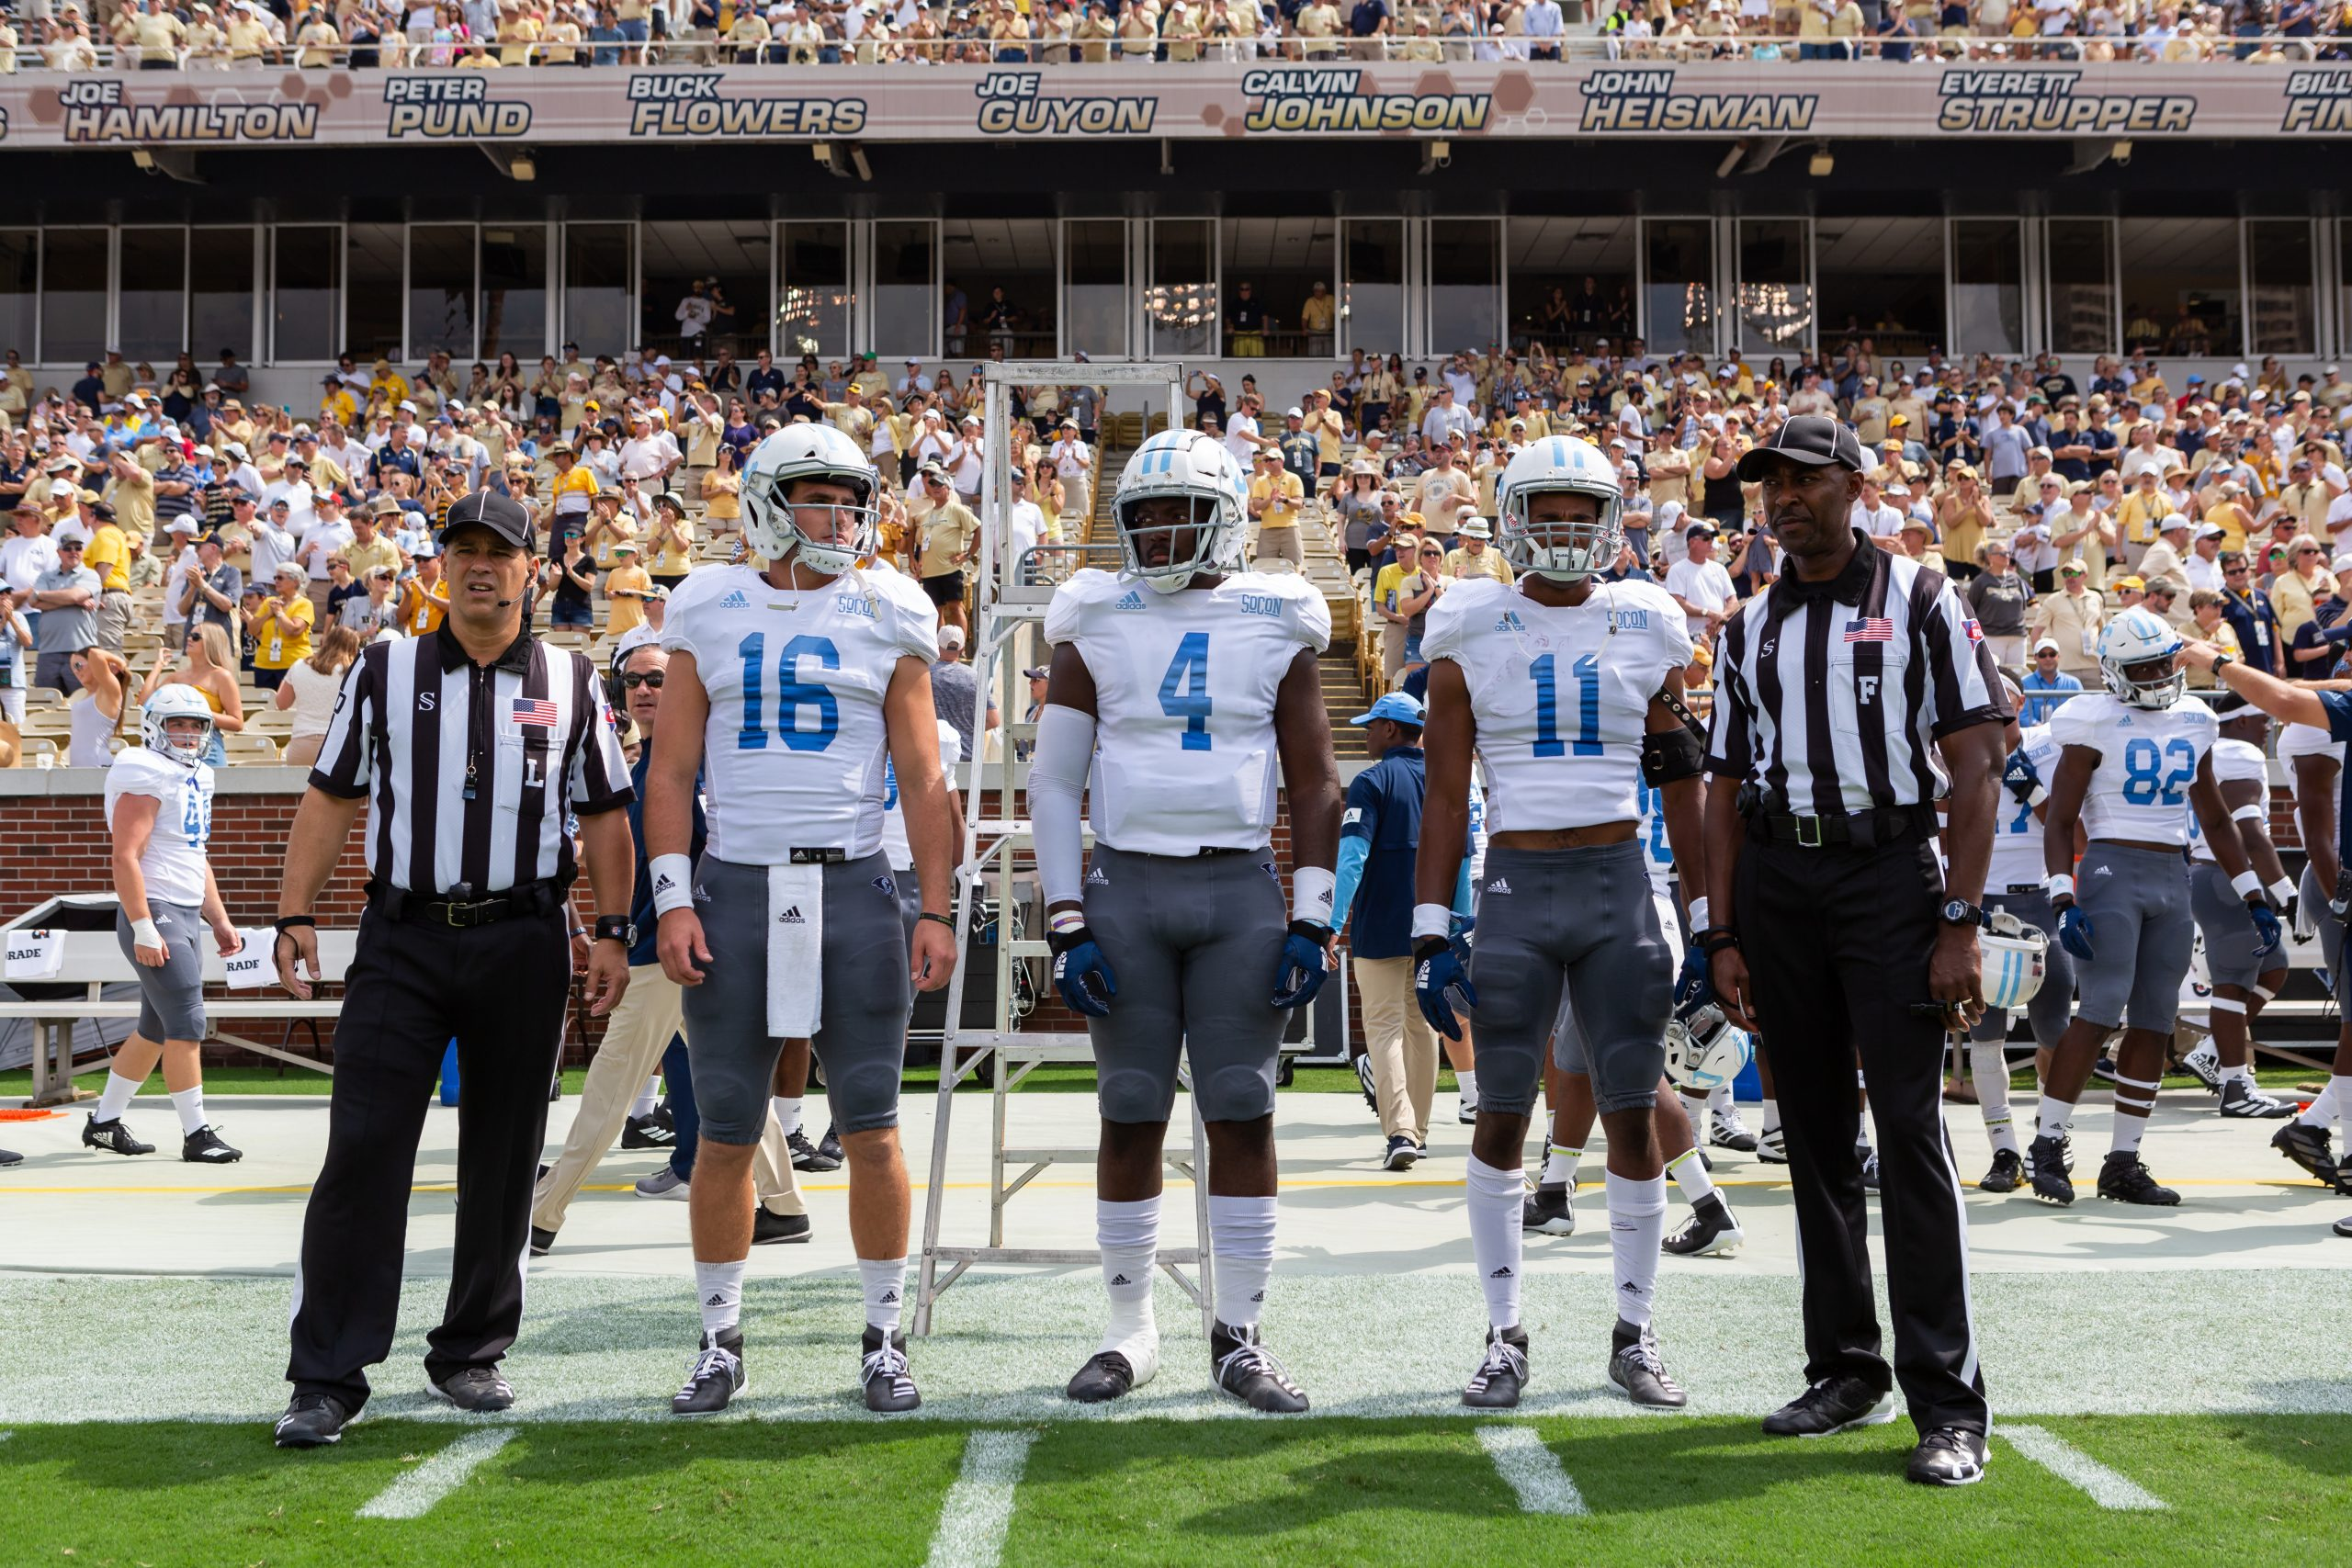 Citadel Brigadiers Foundation football players on sidelines with referees